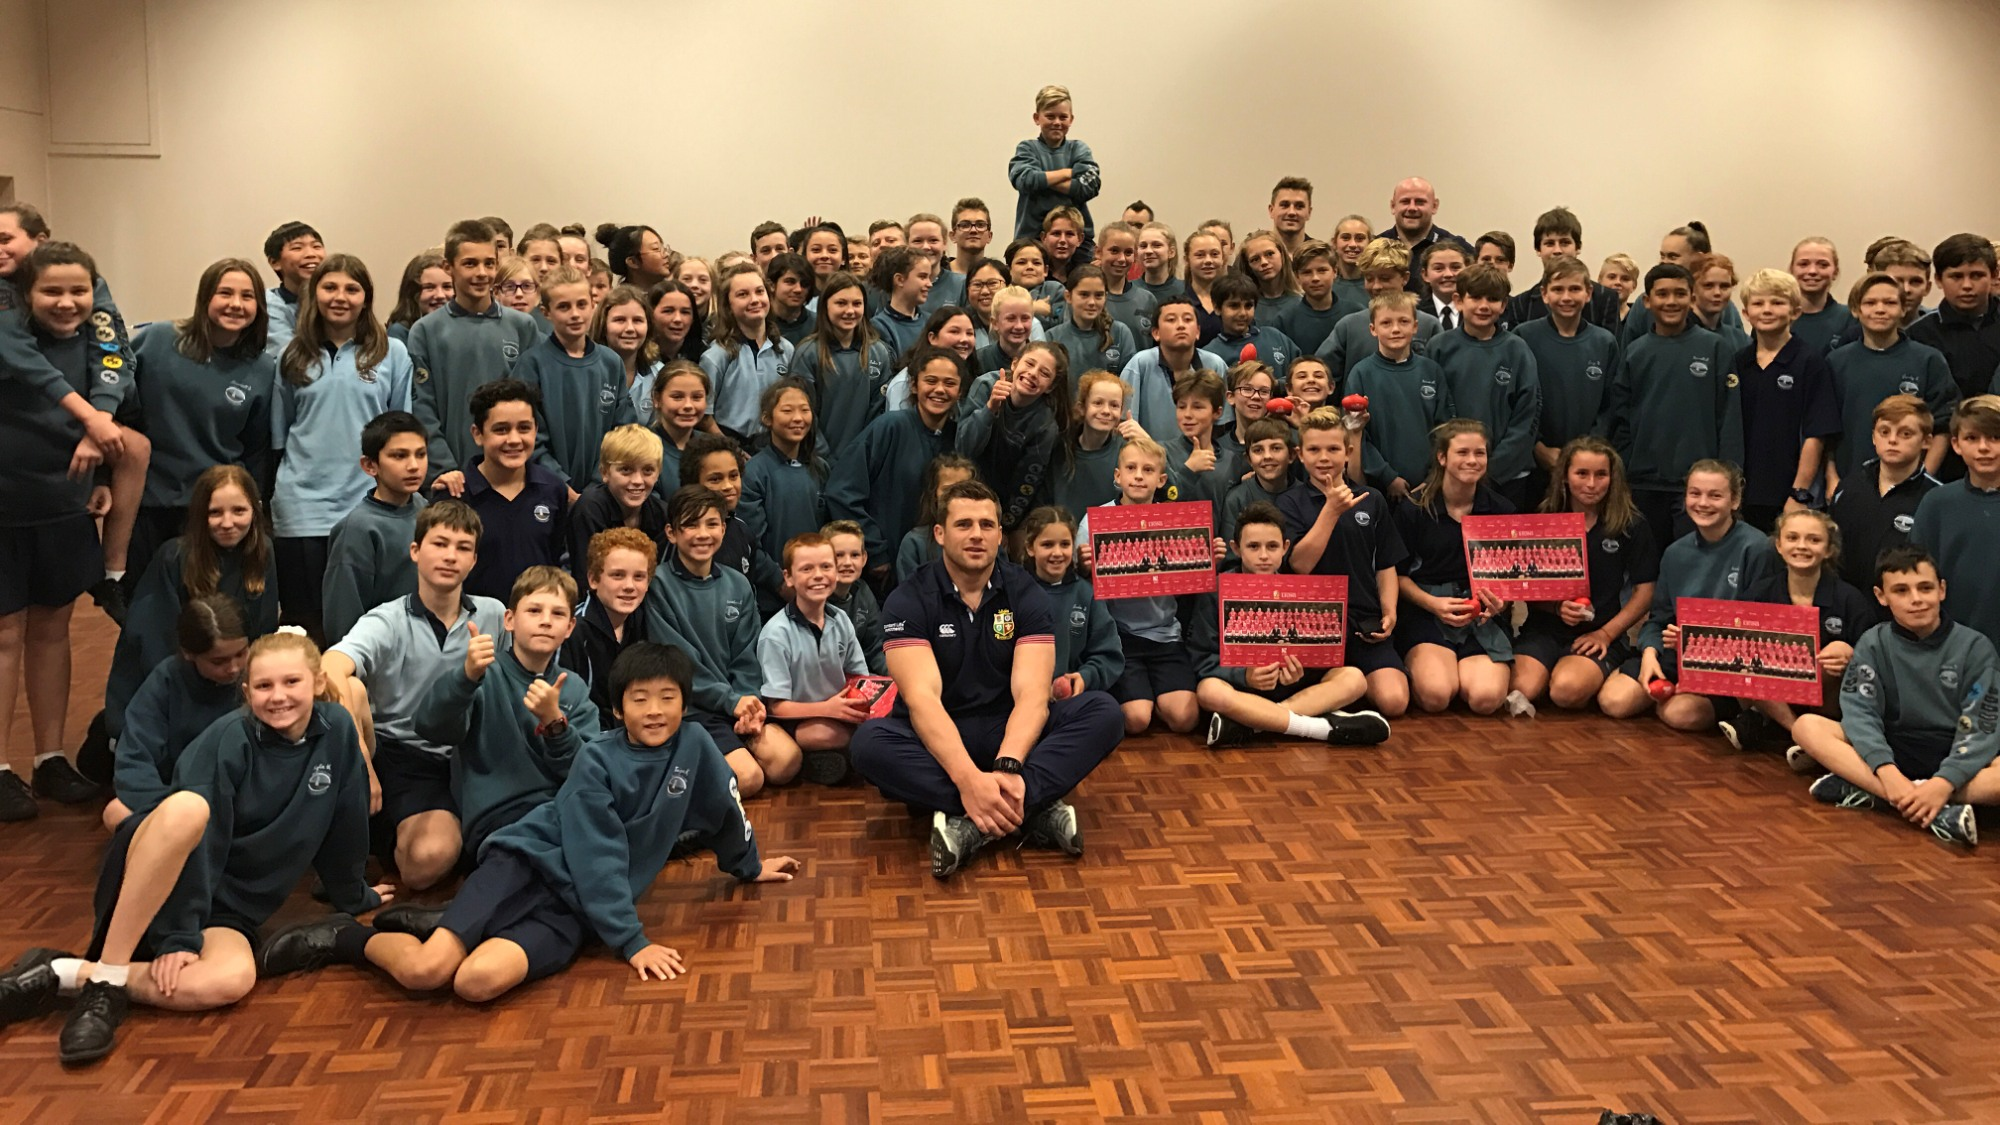 The Lions hit the road with 12 community visits